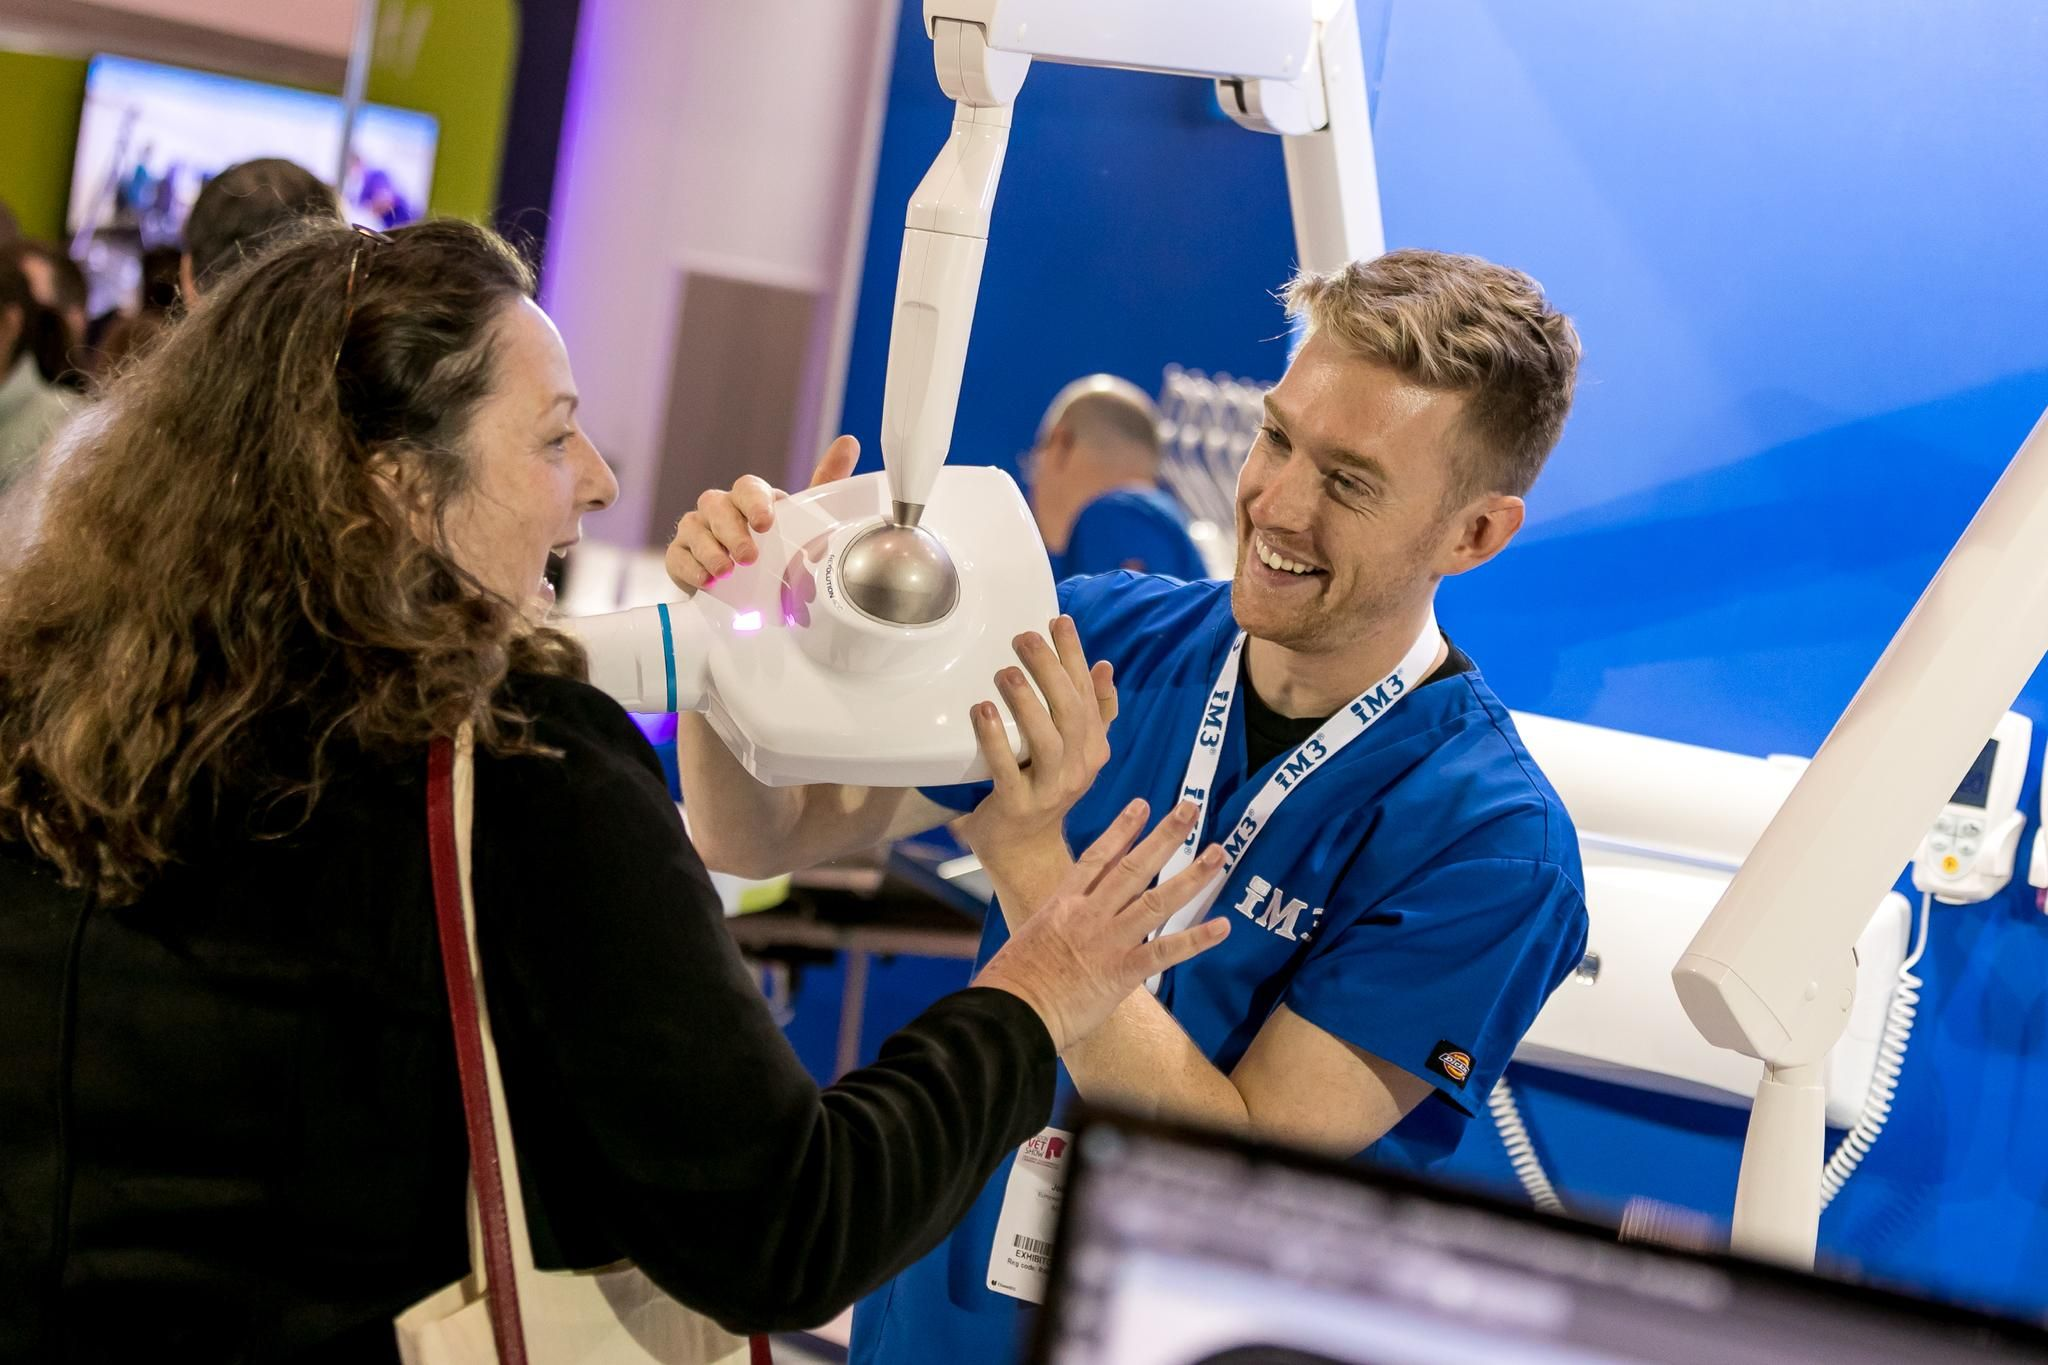 Europe's largest veterinary exhibition